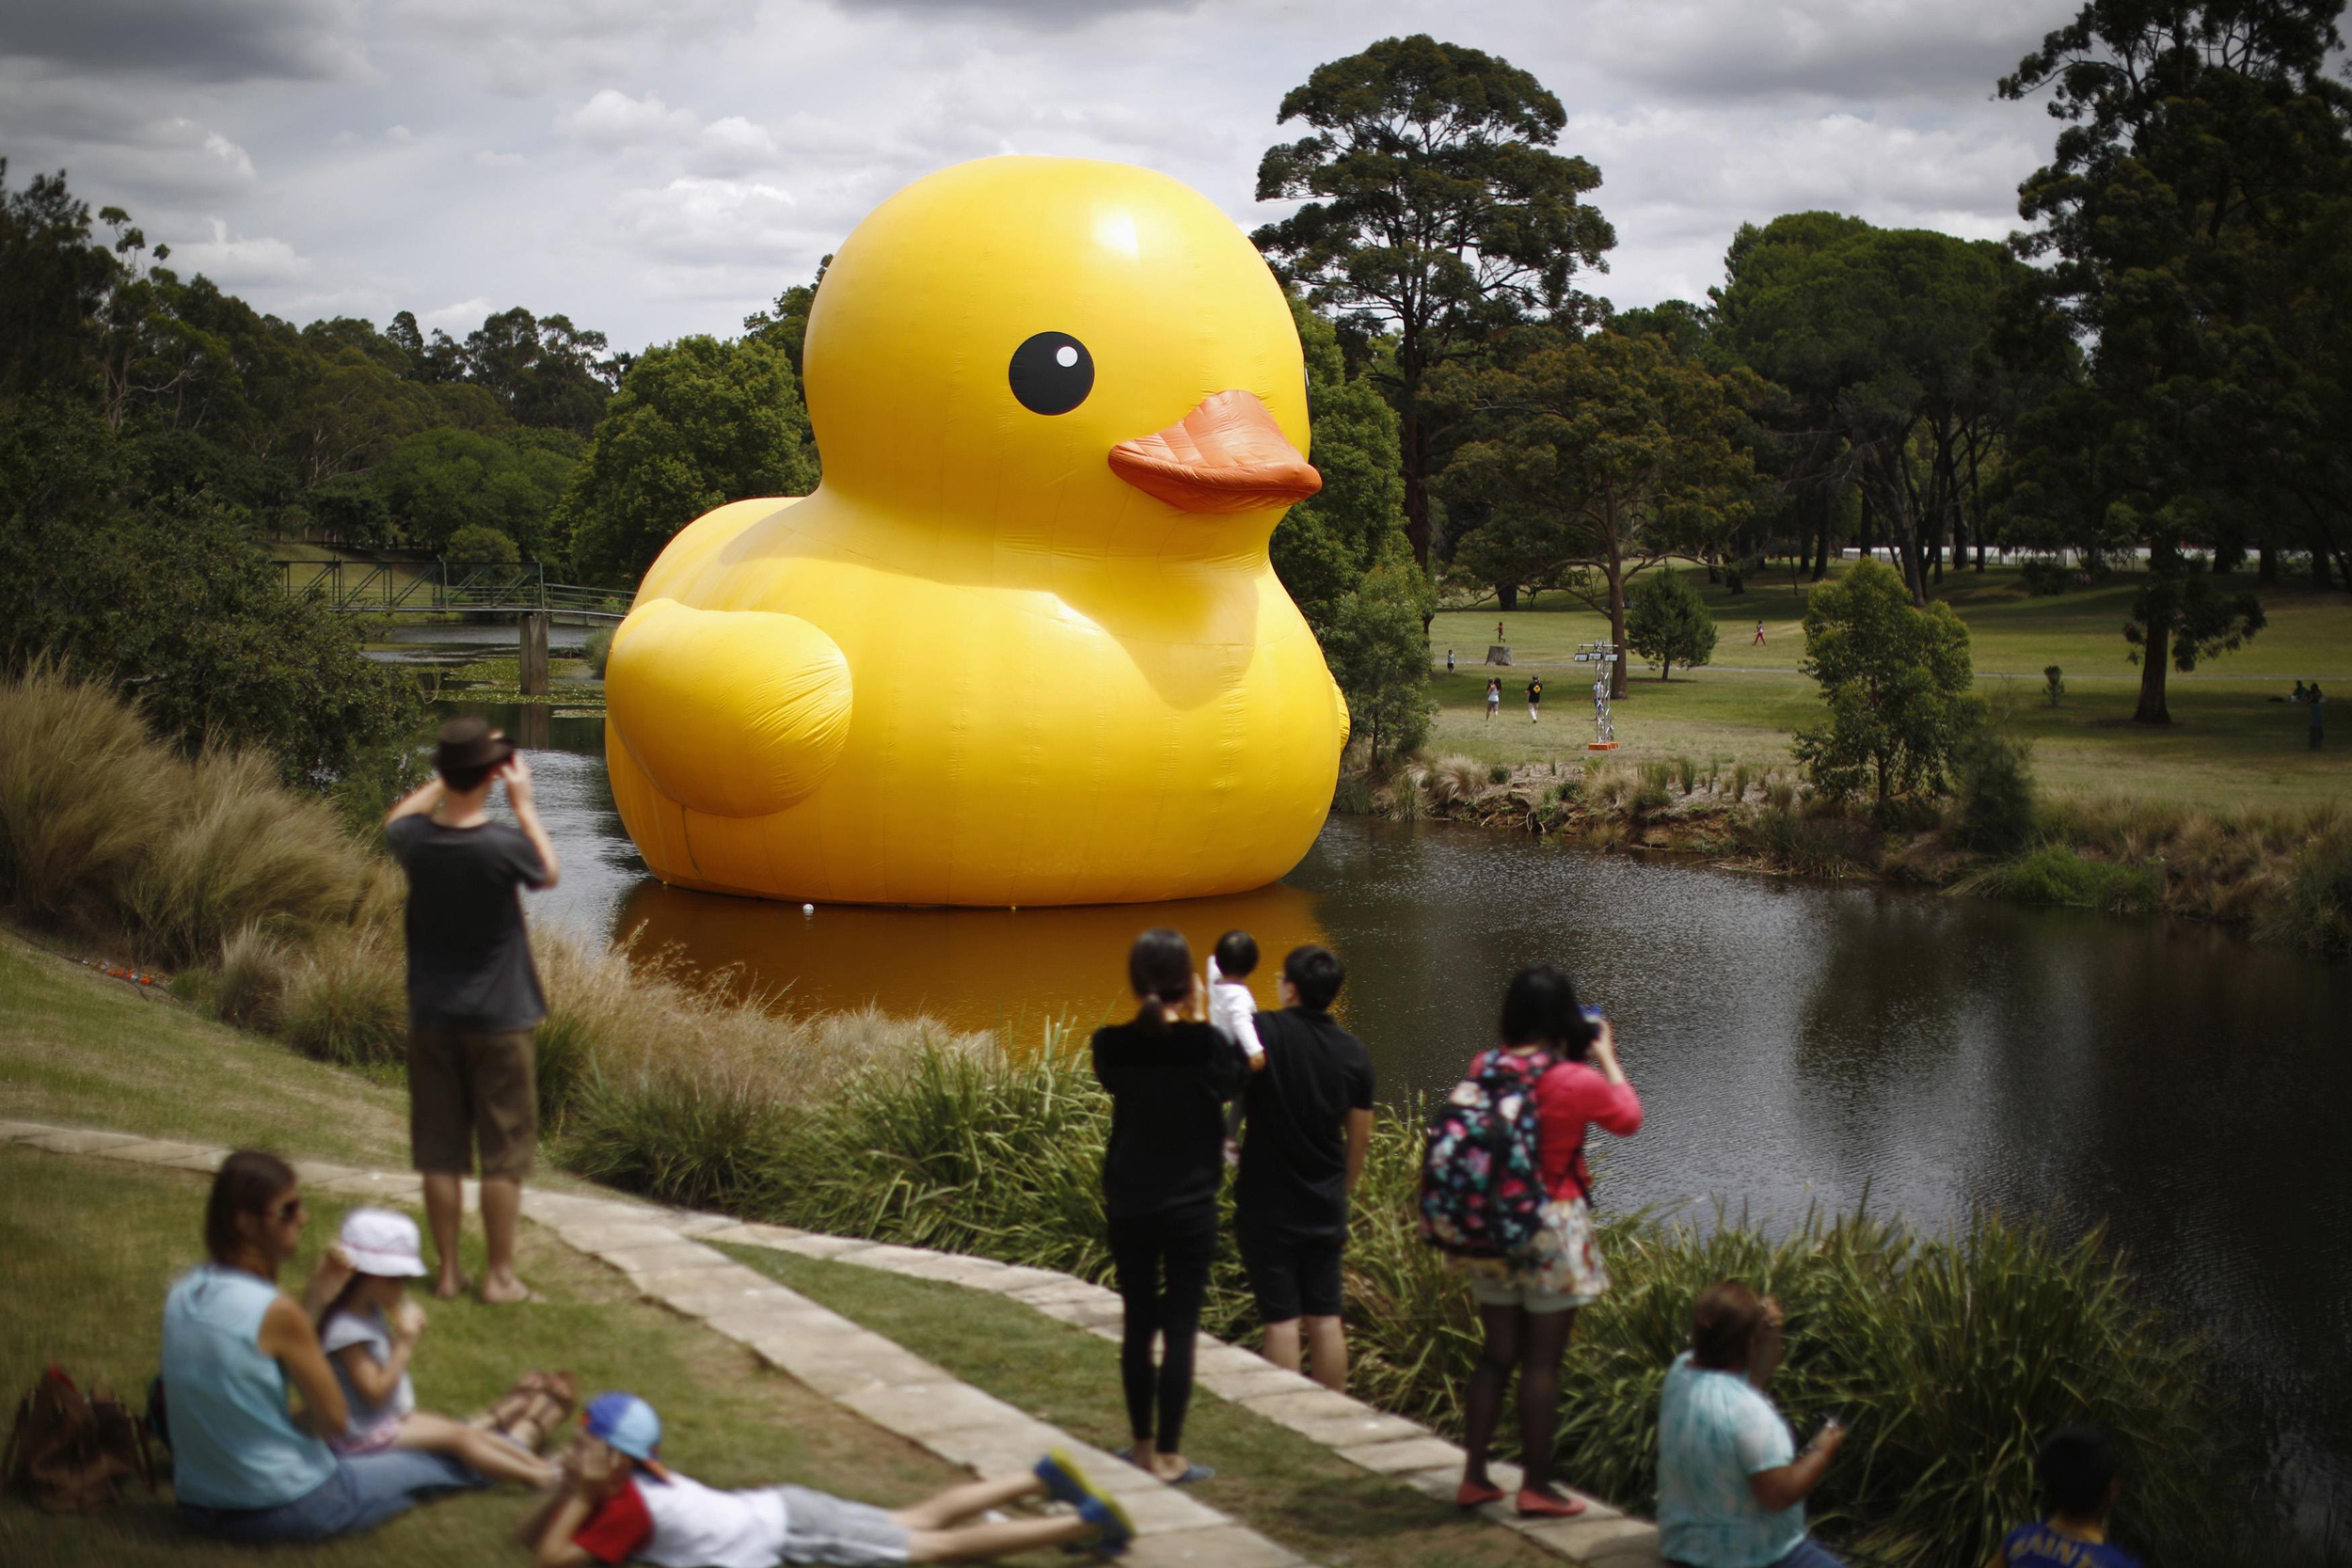 Giant Rubber Duck Pops Up In Australia Photos